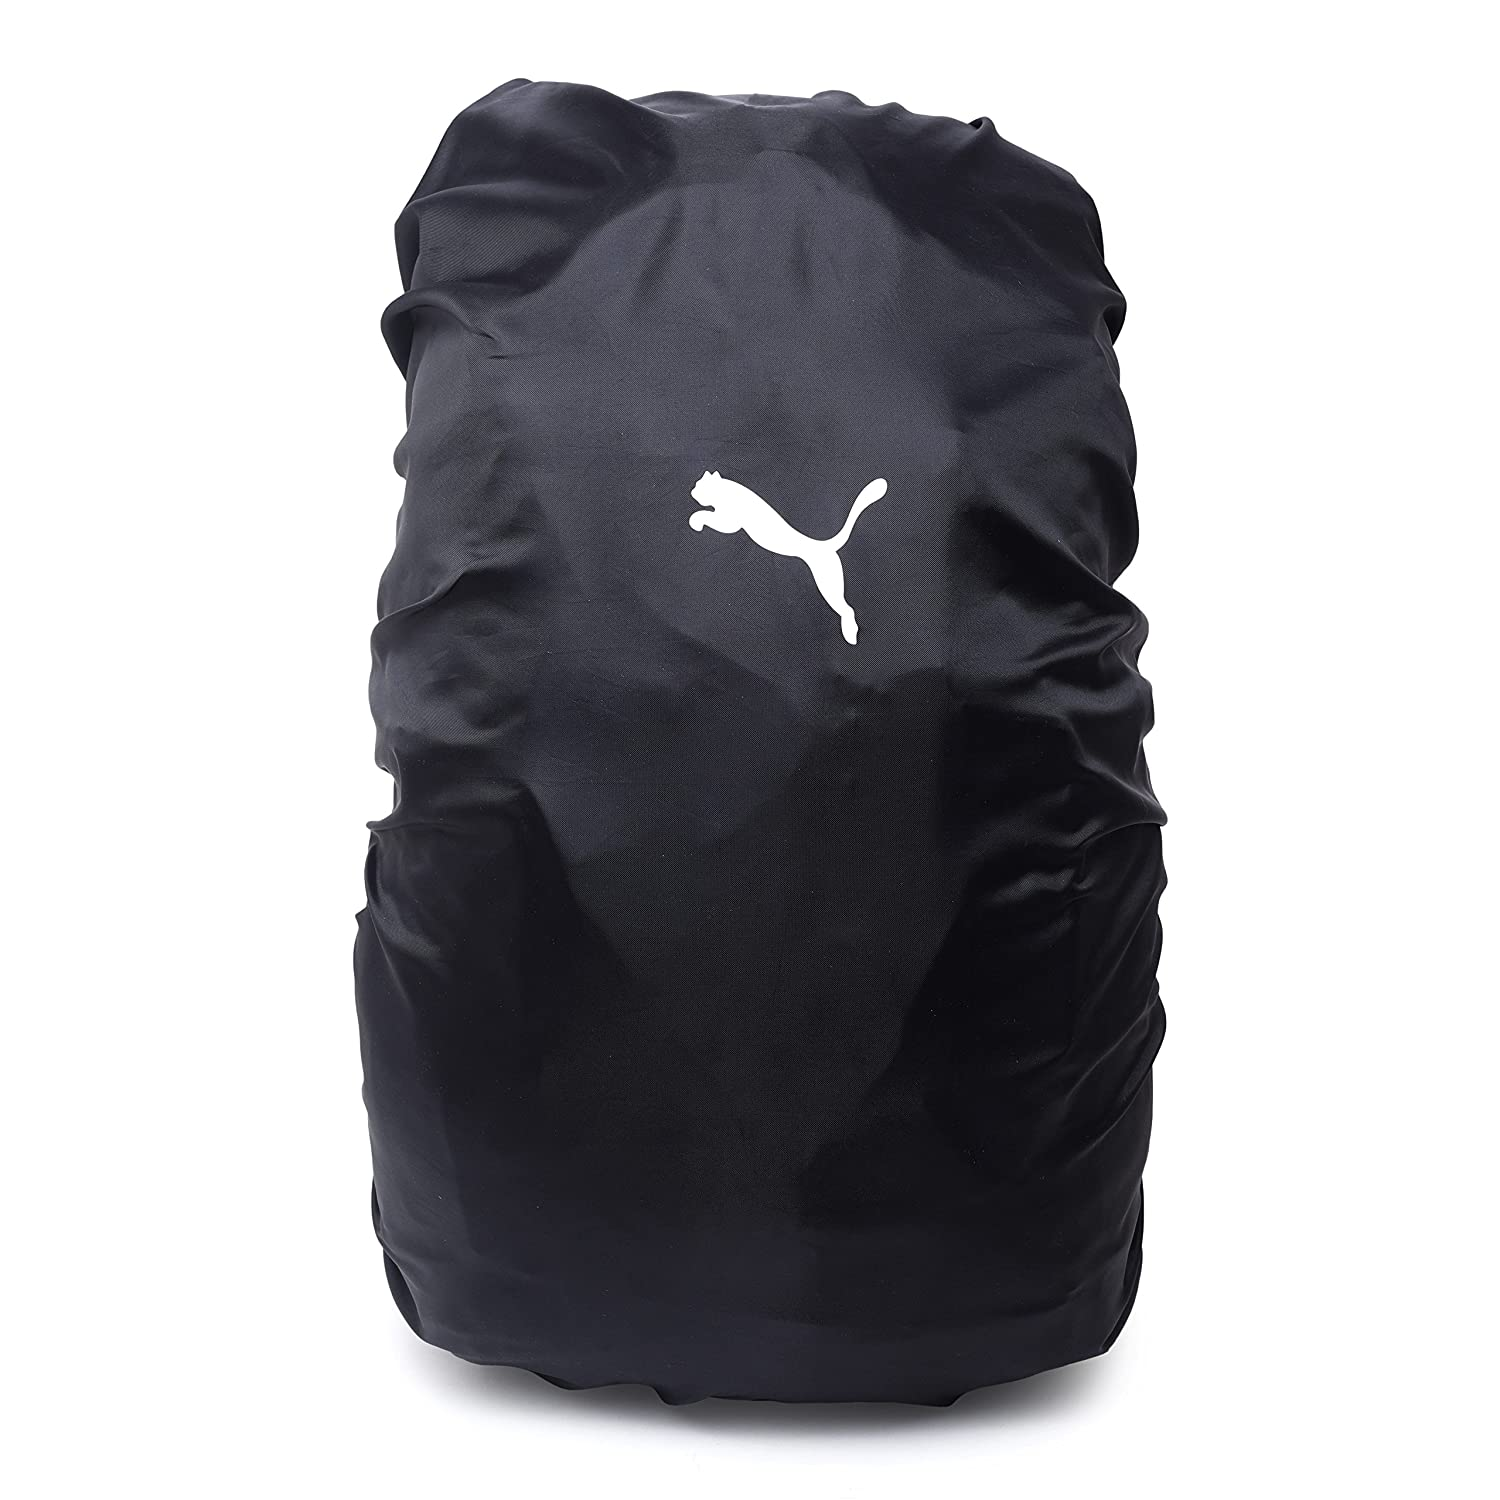 Puma Black Rain & Dust Cover for Backpack (7534201)